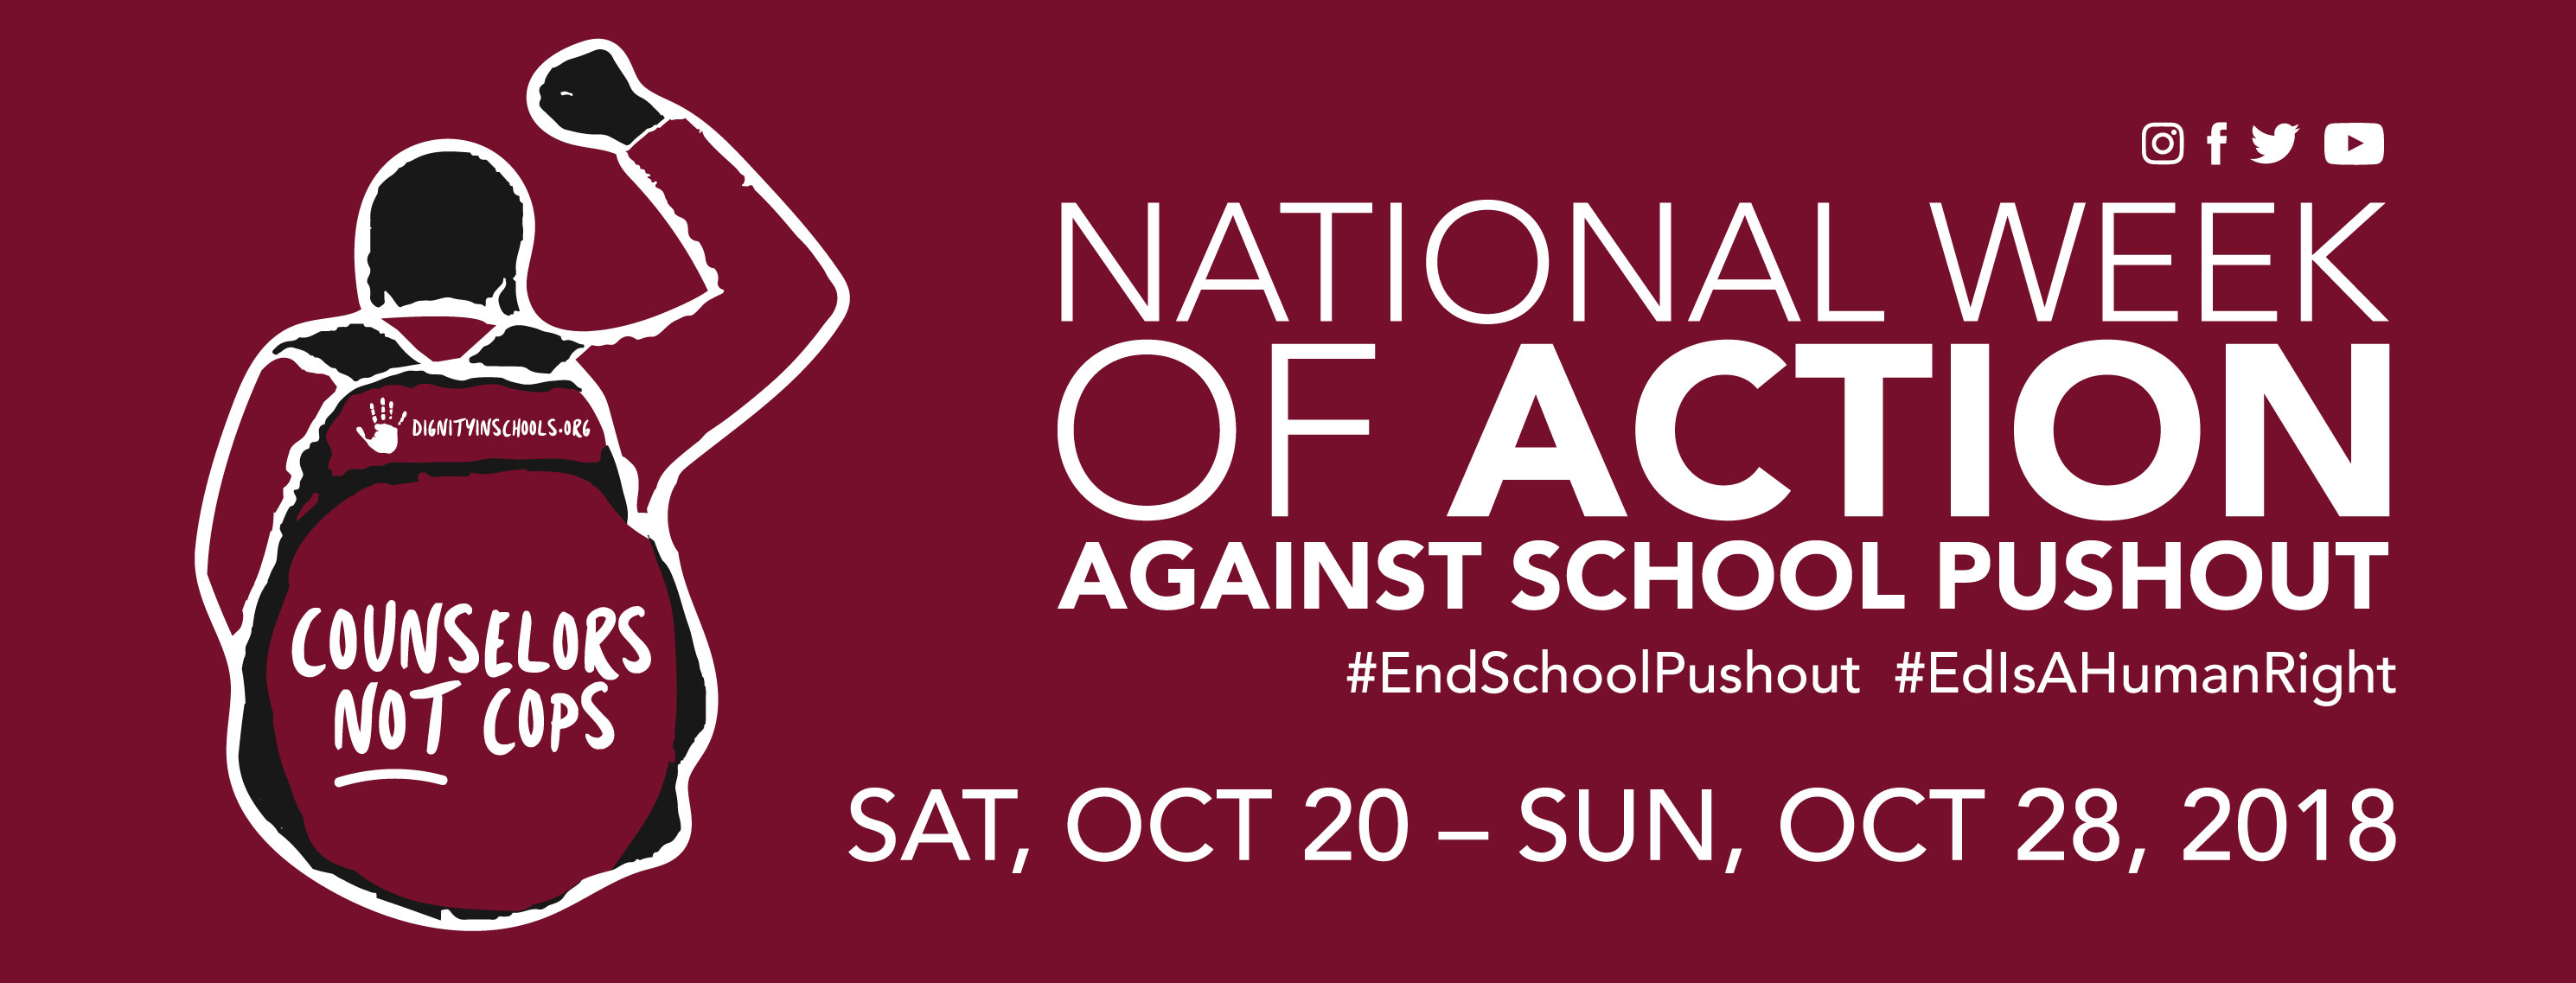 Central Valley Activities and Events for National Week of Action School Pushout